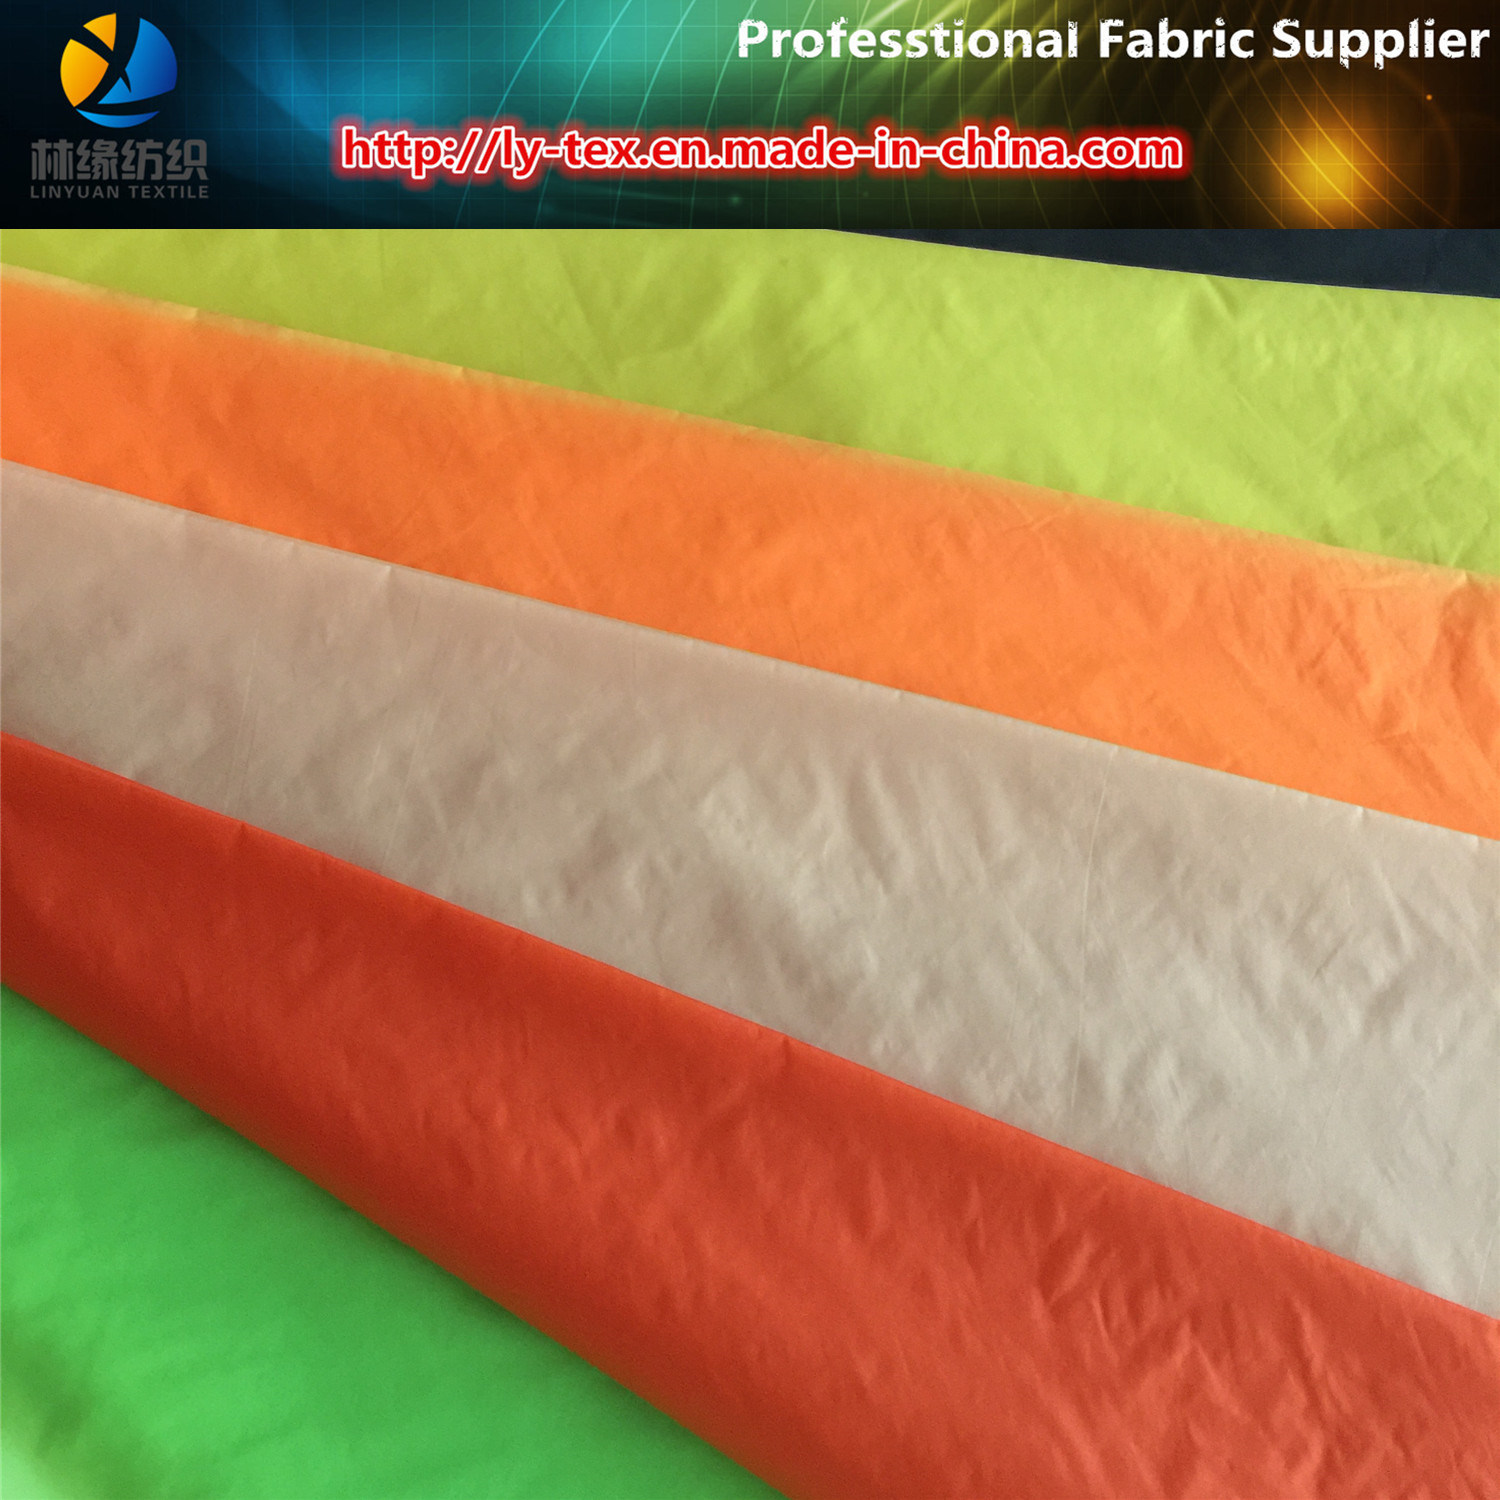 380t Nylon Taffeta, 20d Semi-Dull Taffeta with Downproof for Pocket Cloth (Nylon Fabric)